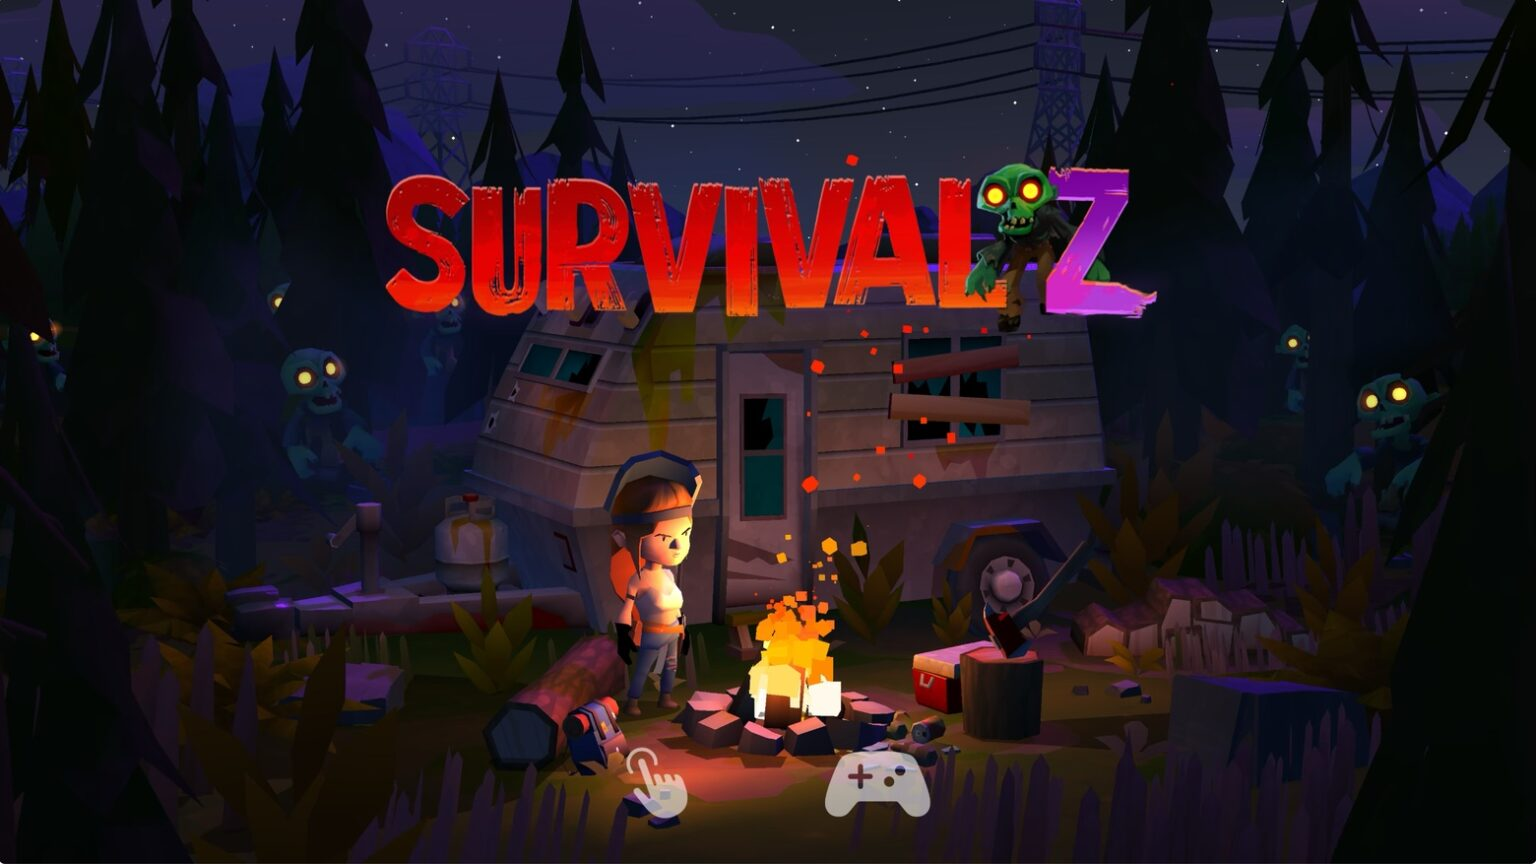 Blast through zombie hordes in 'Survival Z' on Apple Arcade